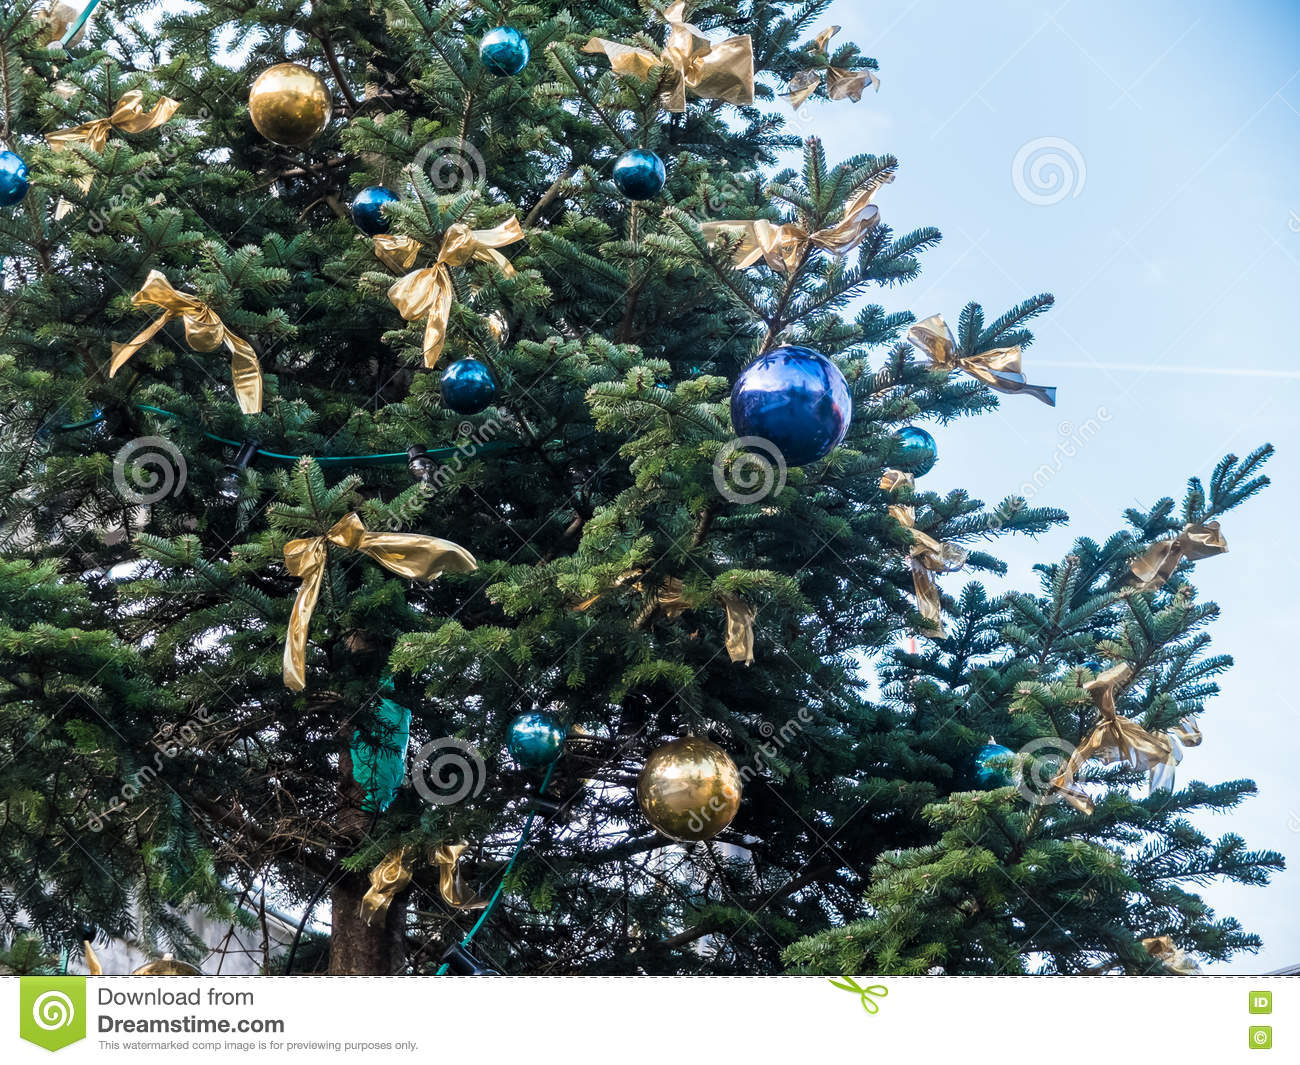 Christmas Tree With Blue And Gold Ornaments Stock Photo - Image ...